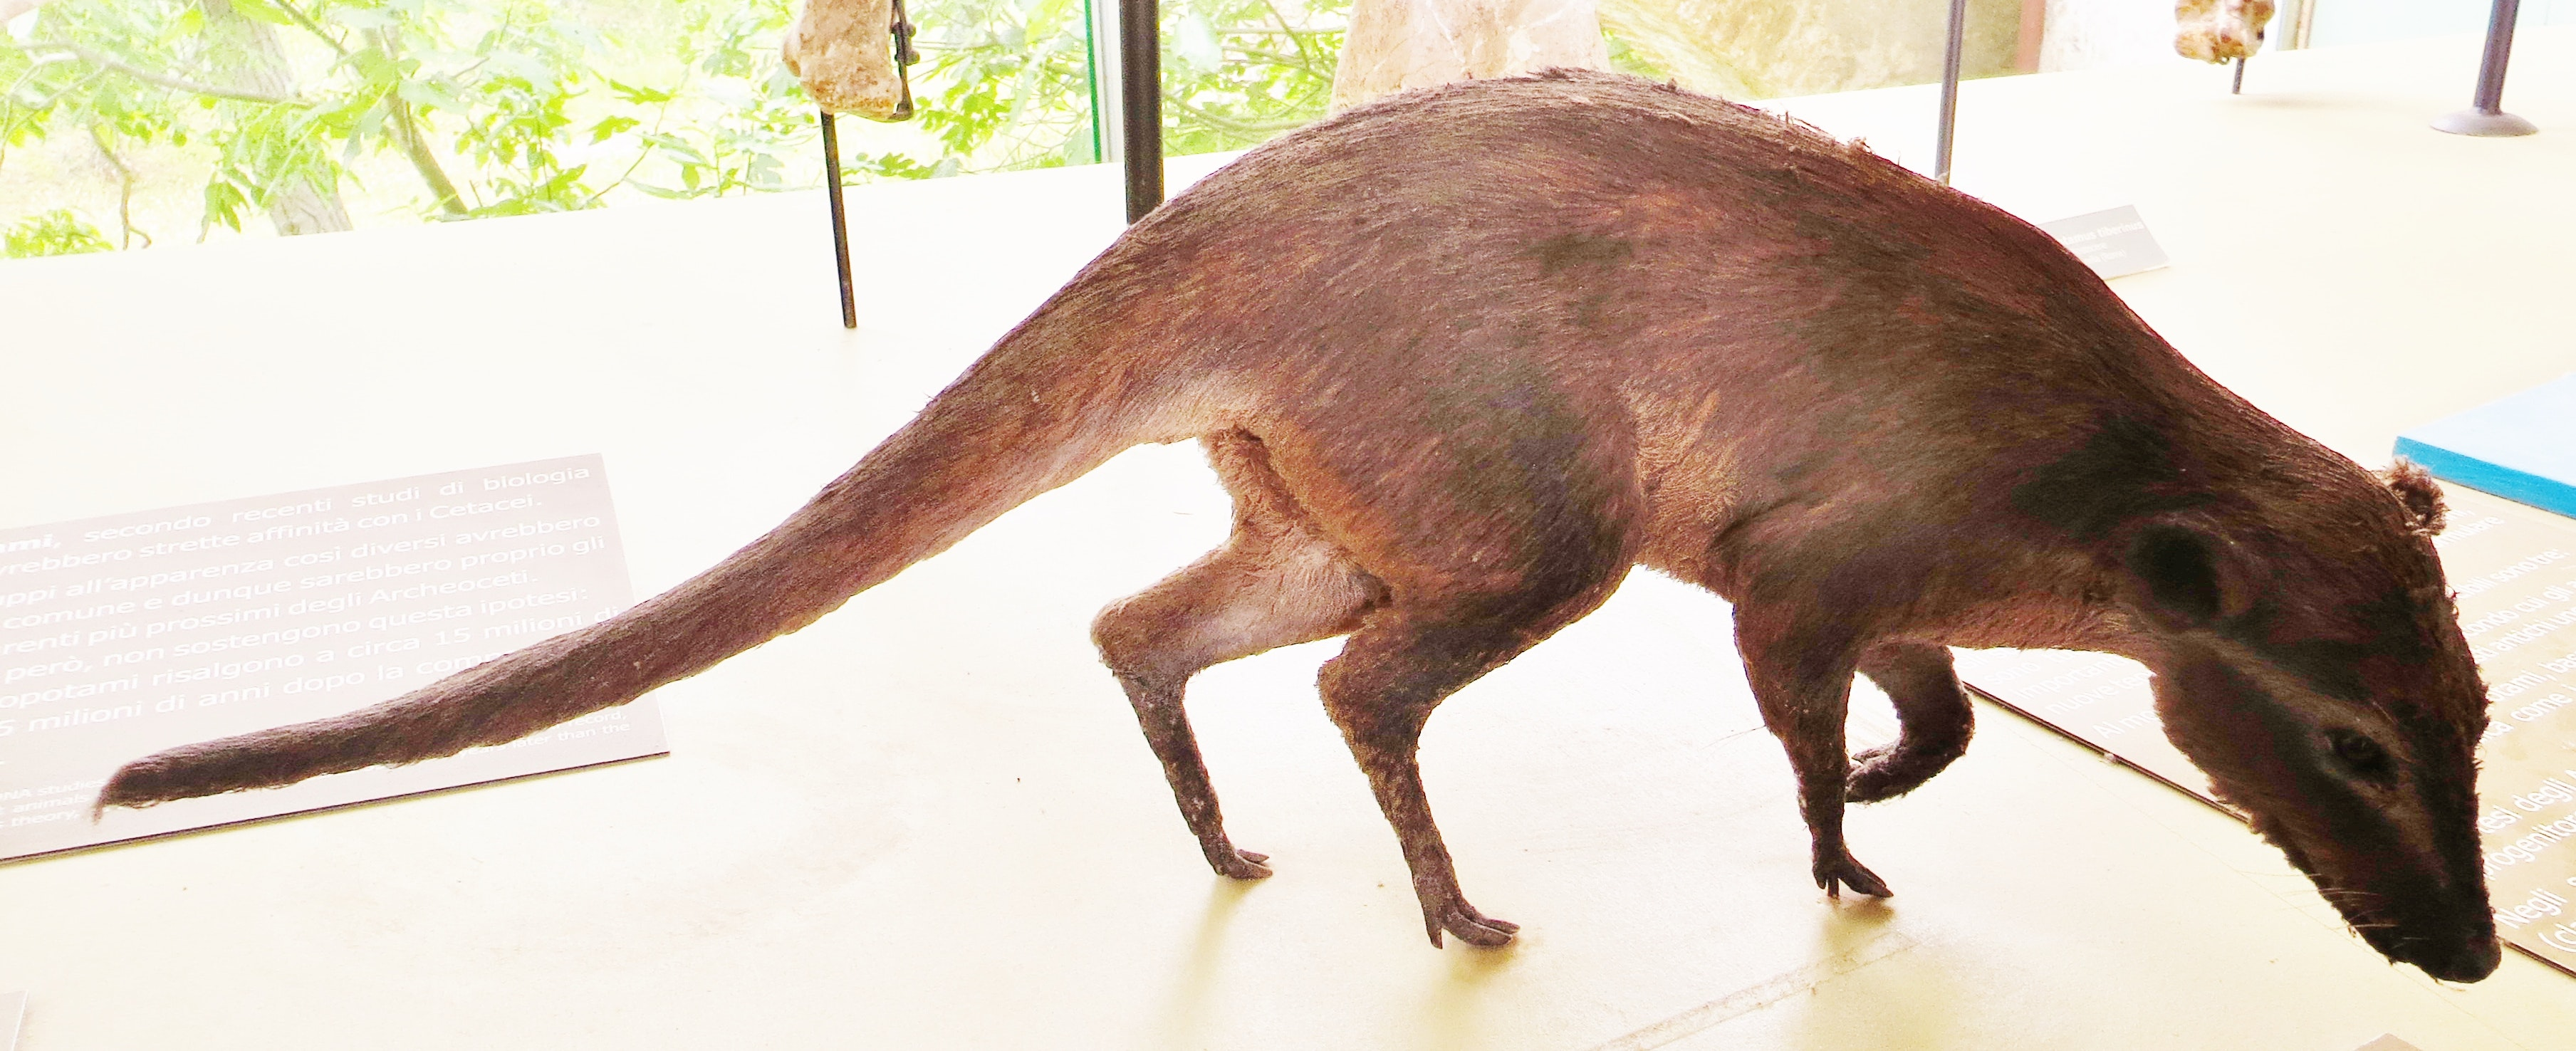 Indohyus, a furry ancestor of modern whales